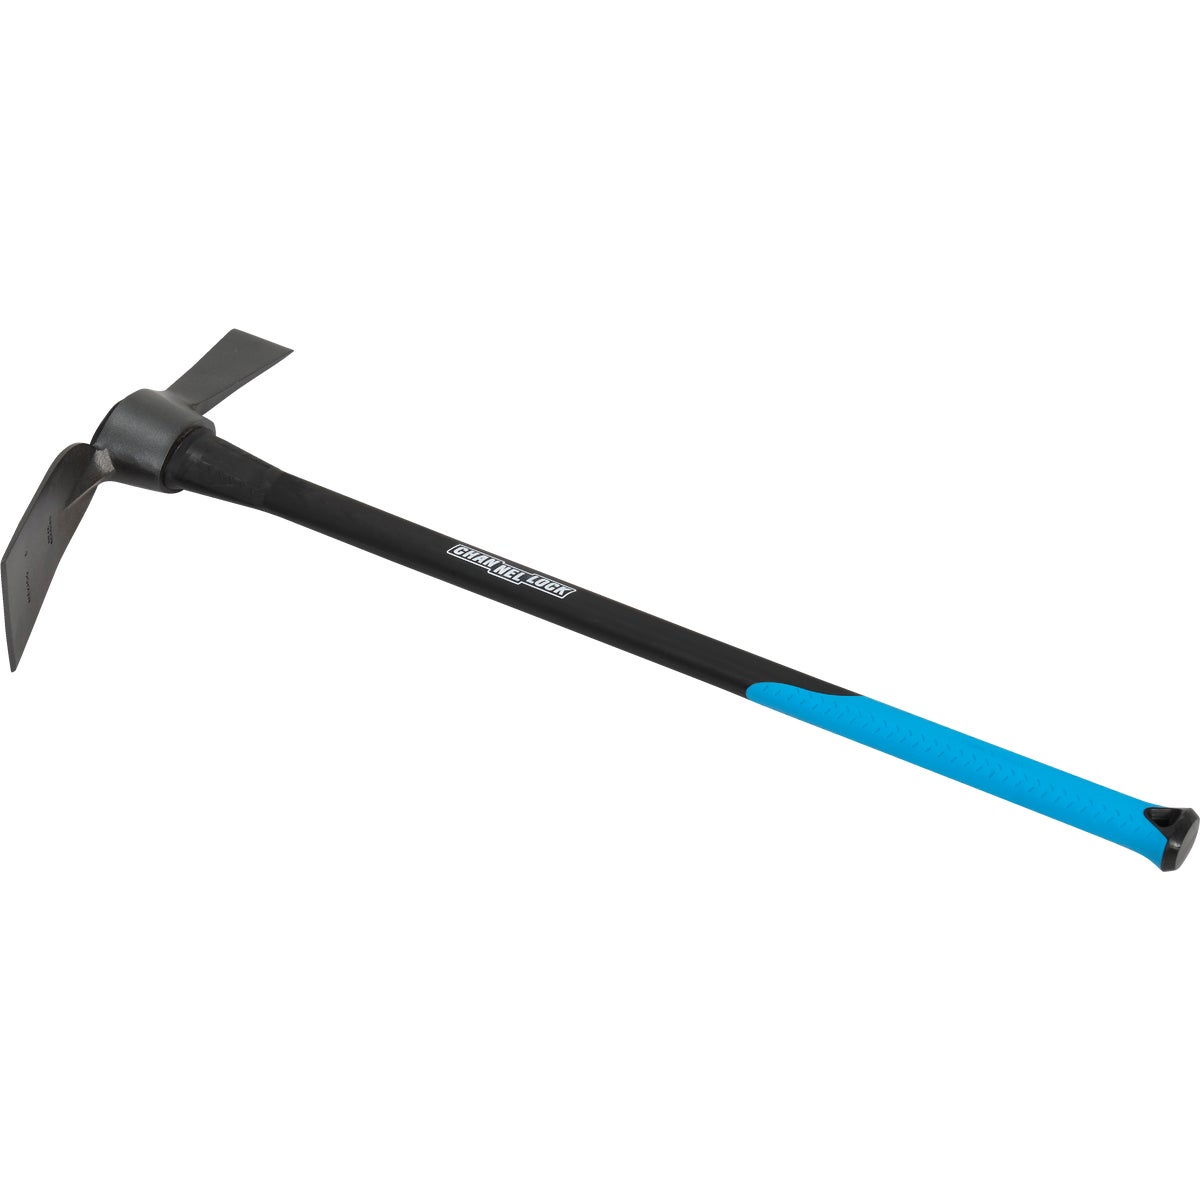 5LB CUTTER MATTOCK - 34242 by Channellock®